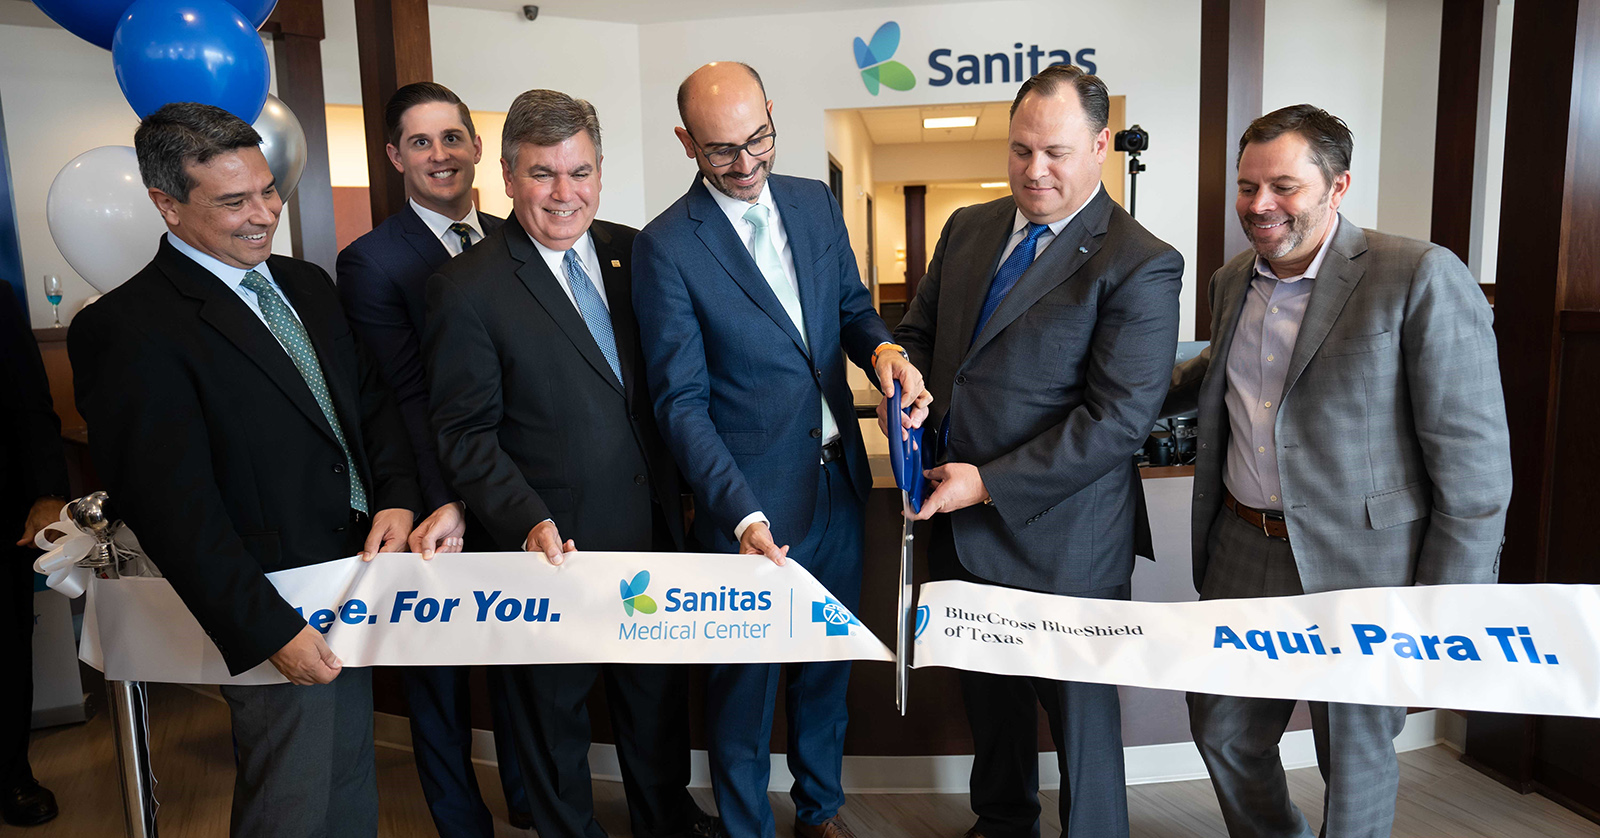 Sanitas and Blue Cross and Blue Shield of Texas leaders unveil the first of 10 new medical centers in the Dallas and Houston areas.